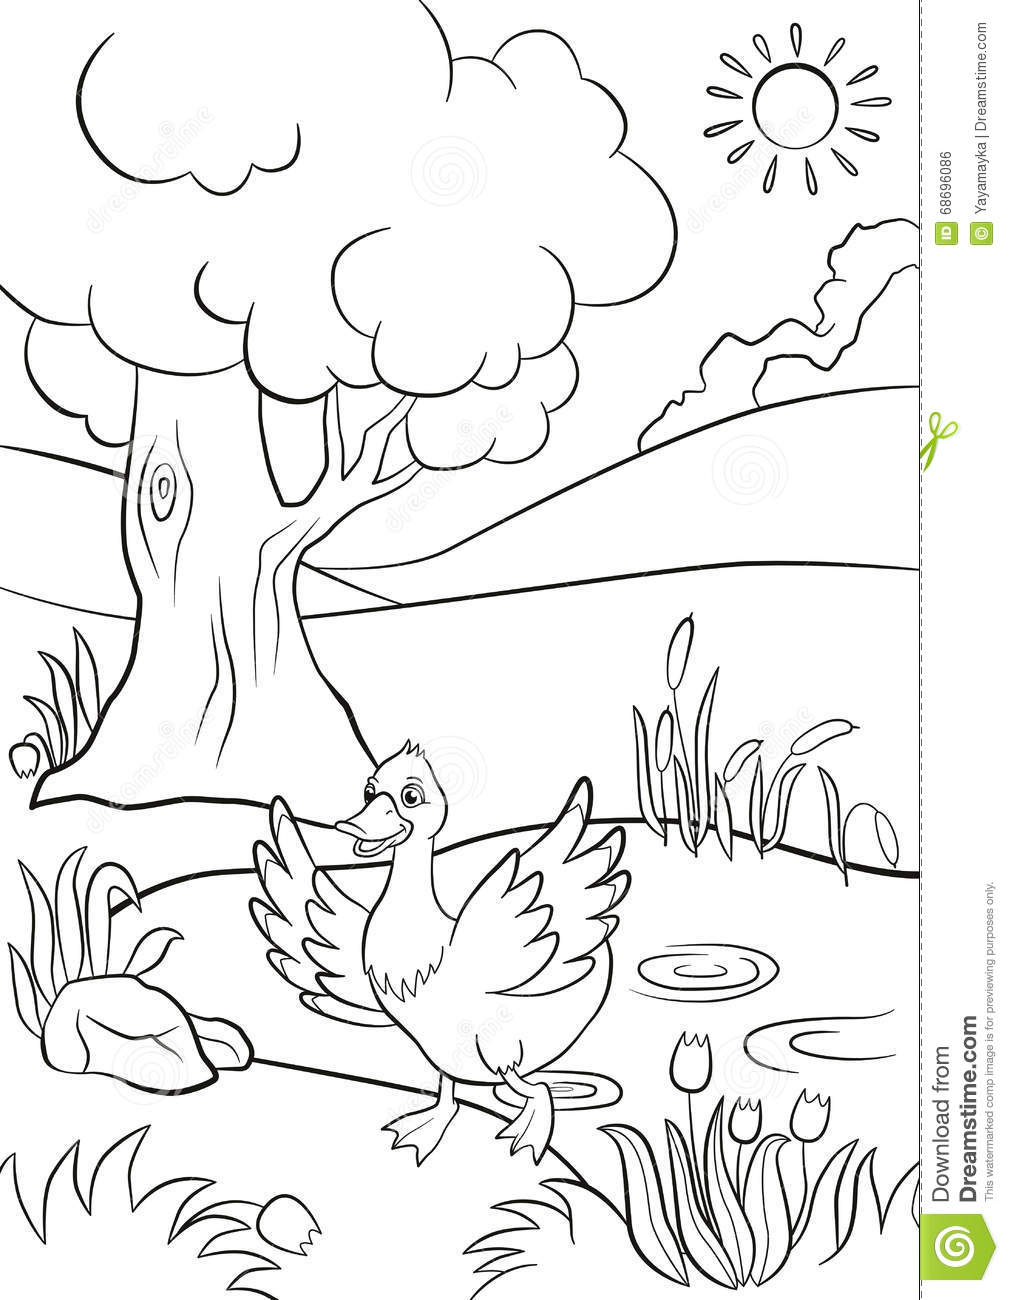 Free Coloring Pages Of A Frog In A Pond - Coloring Home | 1300x1009